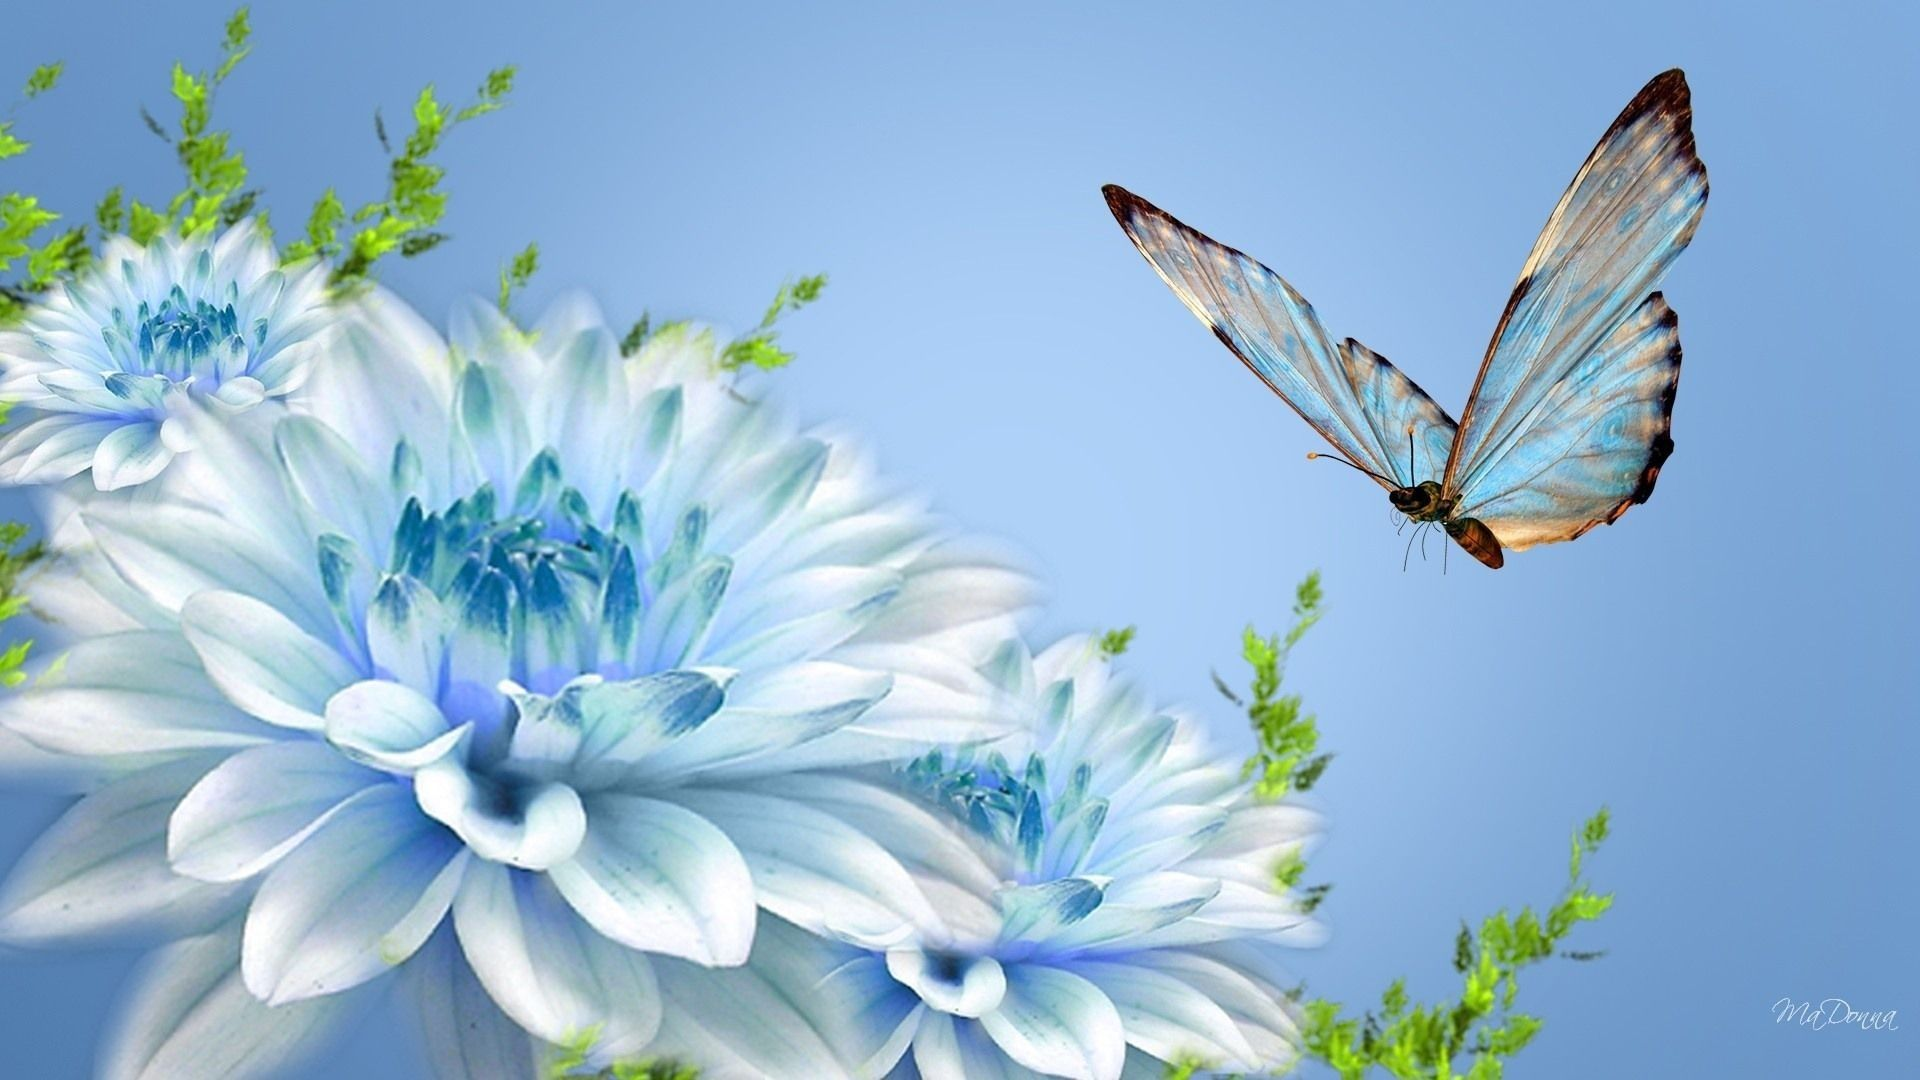 Butterfly On Blue Dahlias Wallpaper Blue Flower Wallpaper Wallpaper Nature Flowers Butterfly Wallpaper